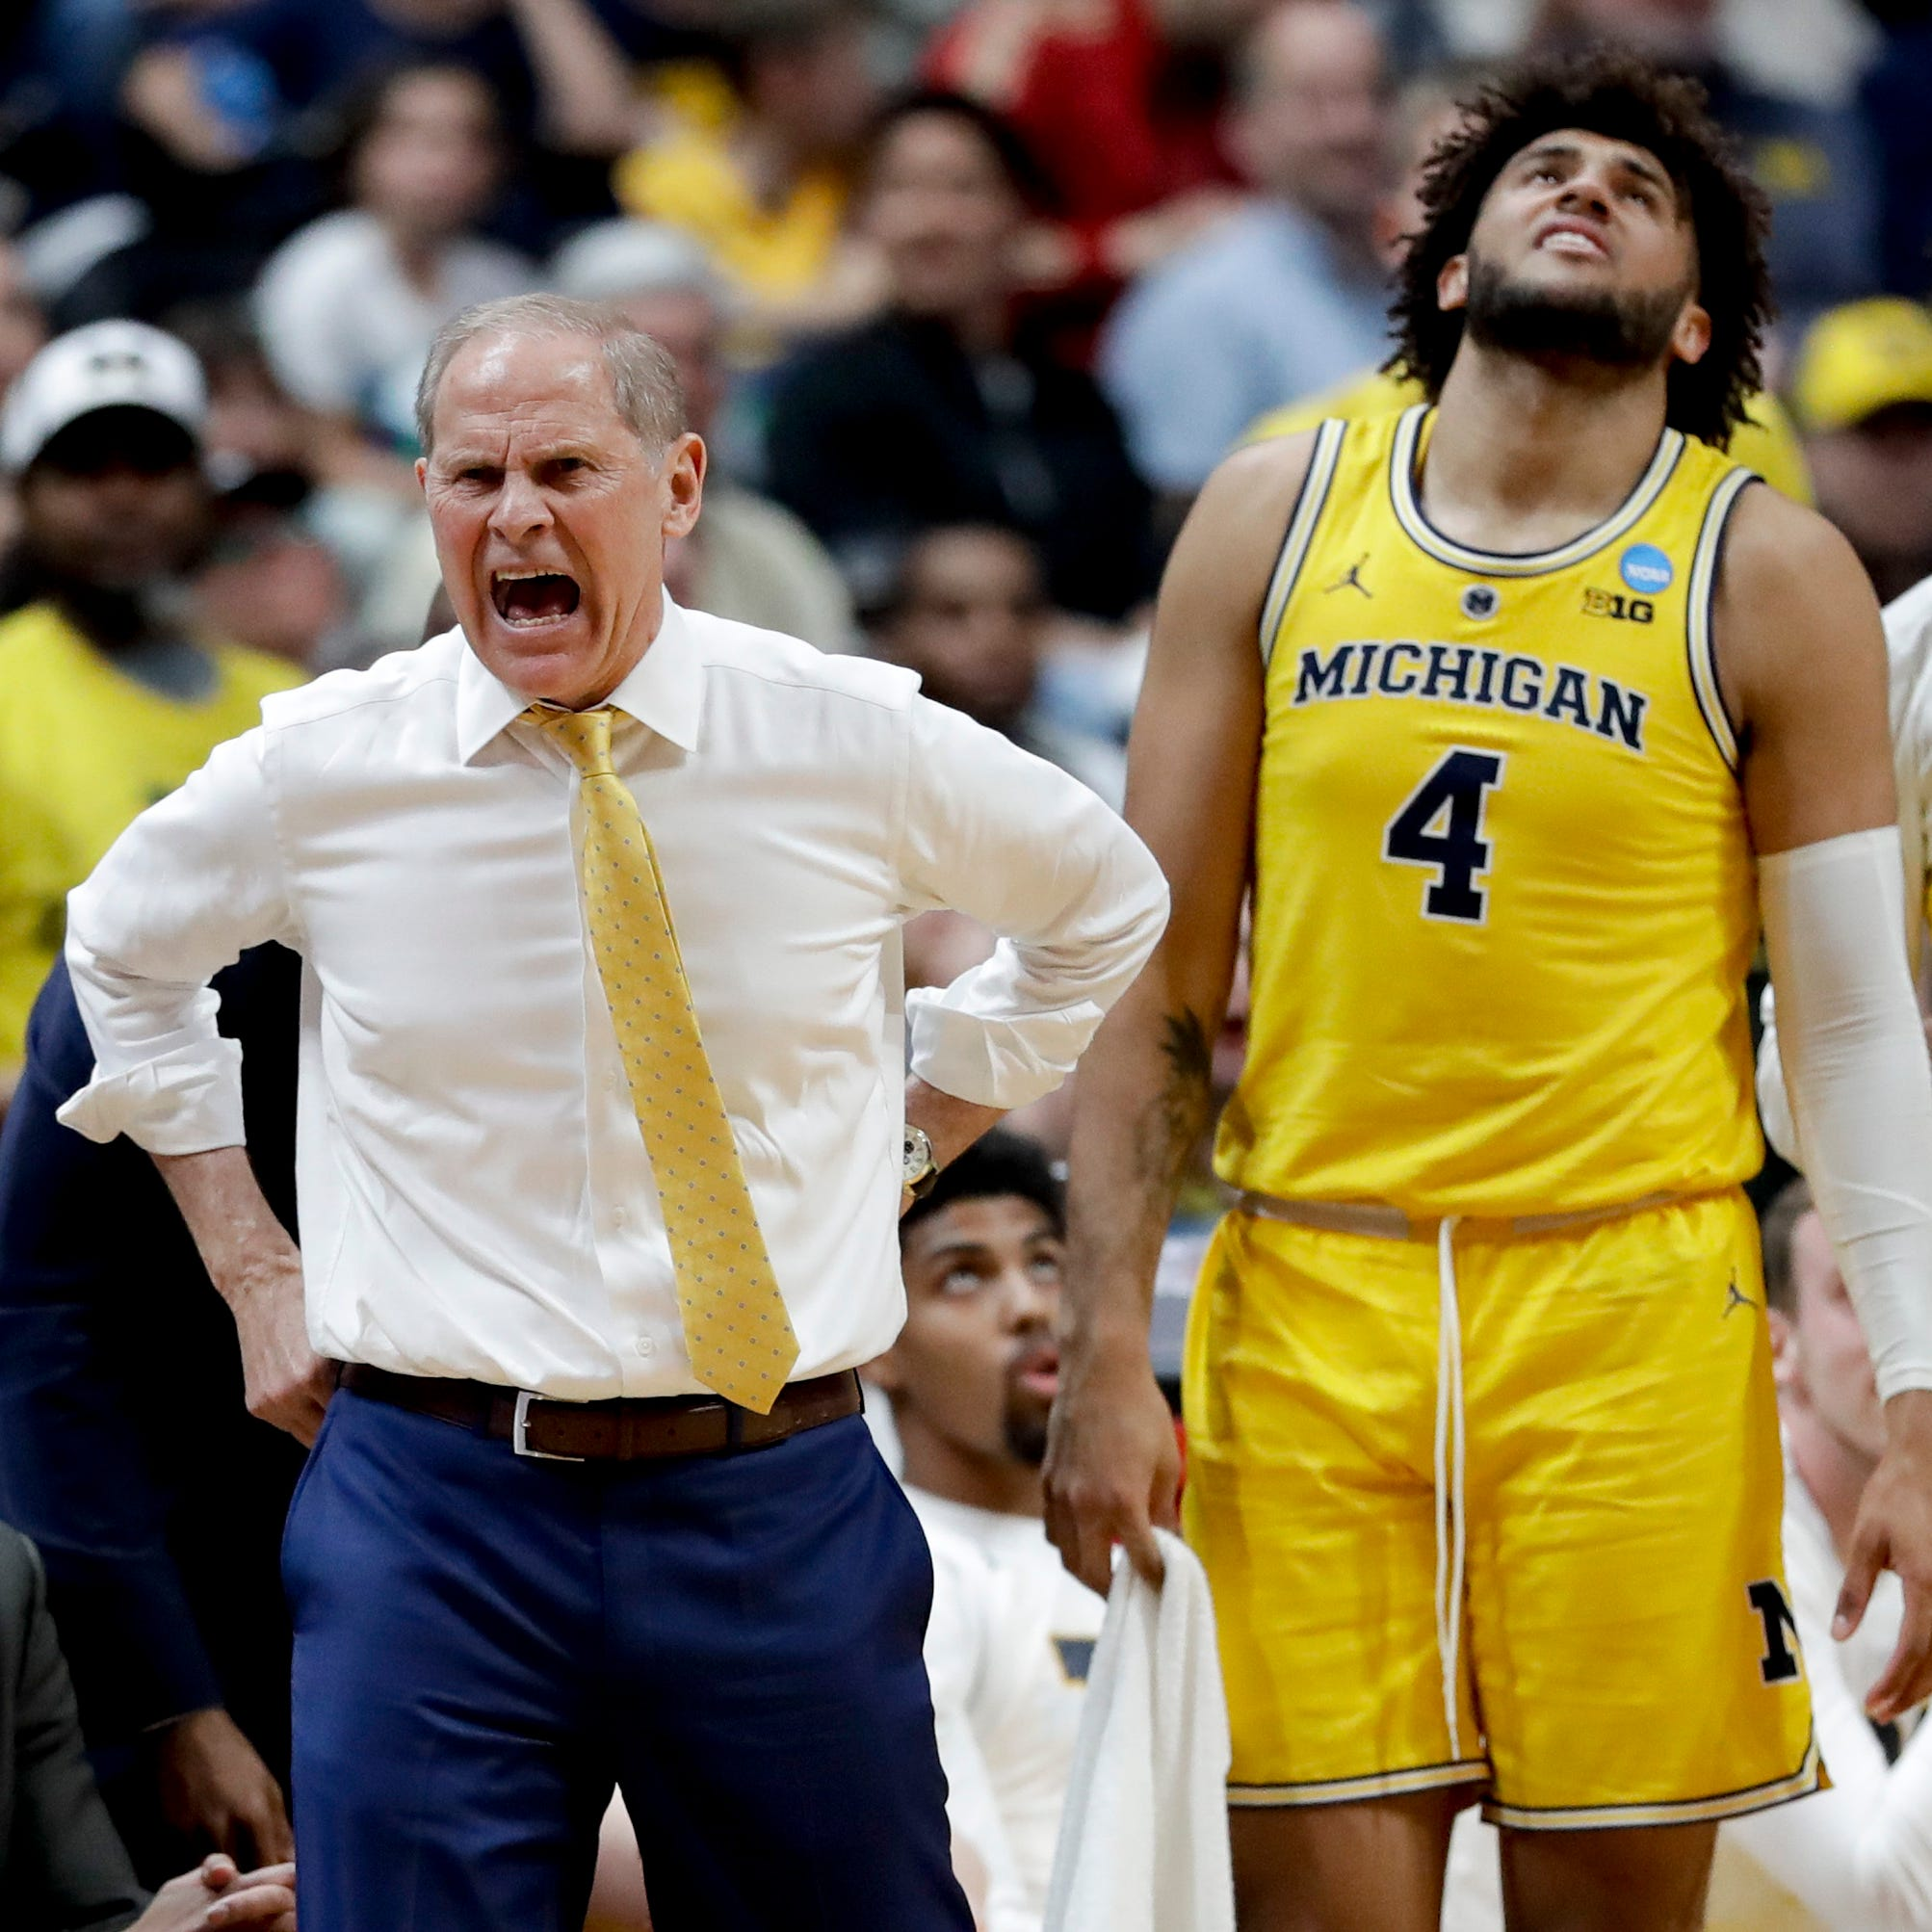 Thirty and out: Michigan season ends with a thud in 19-point loss to Texas Tech